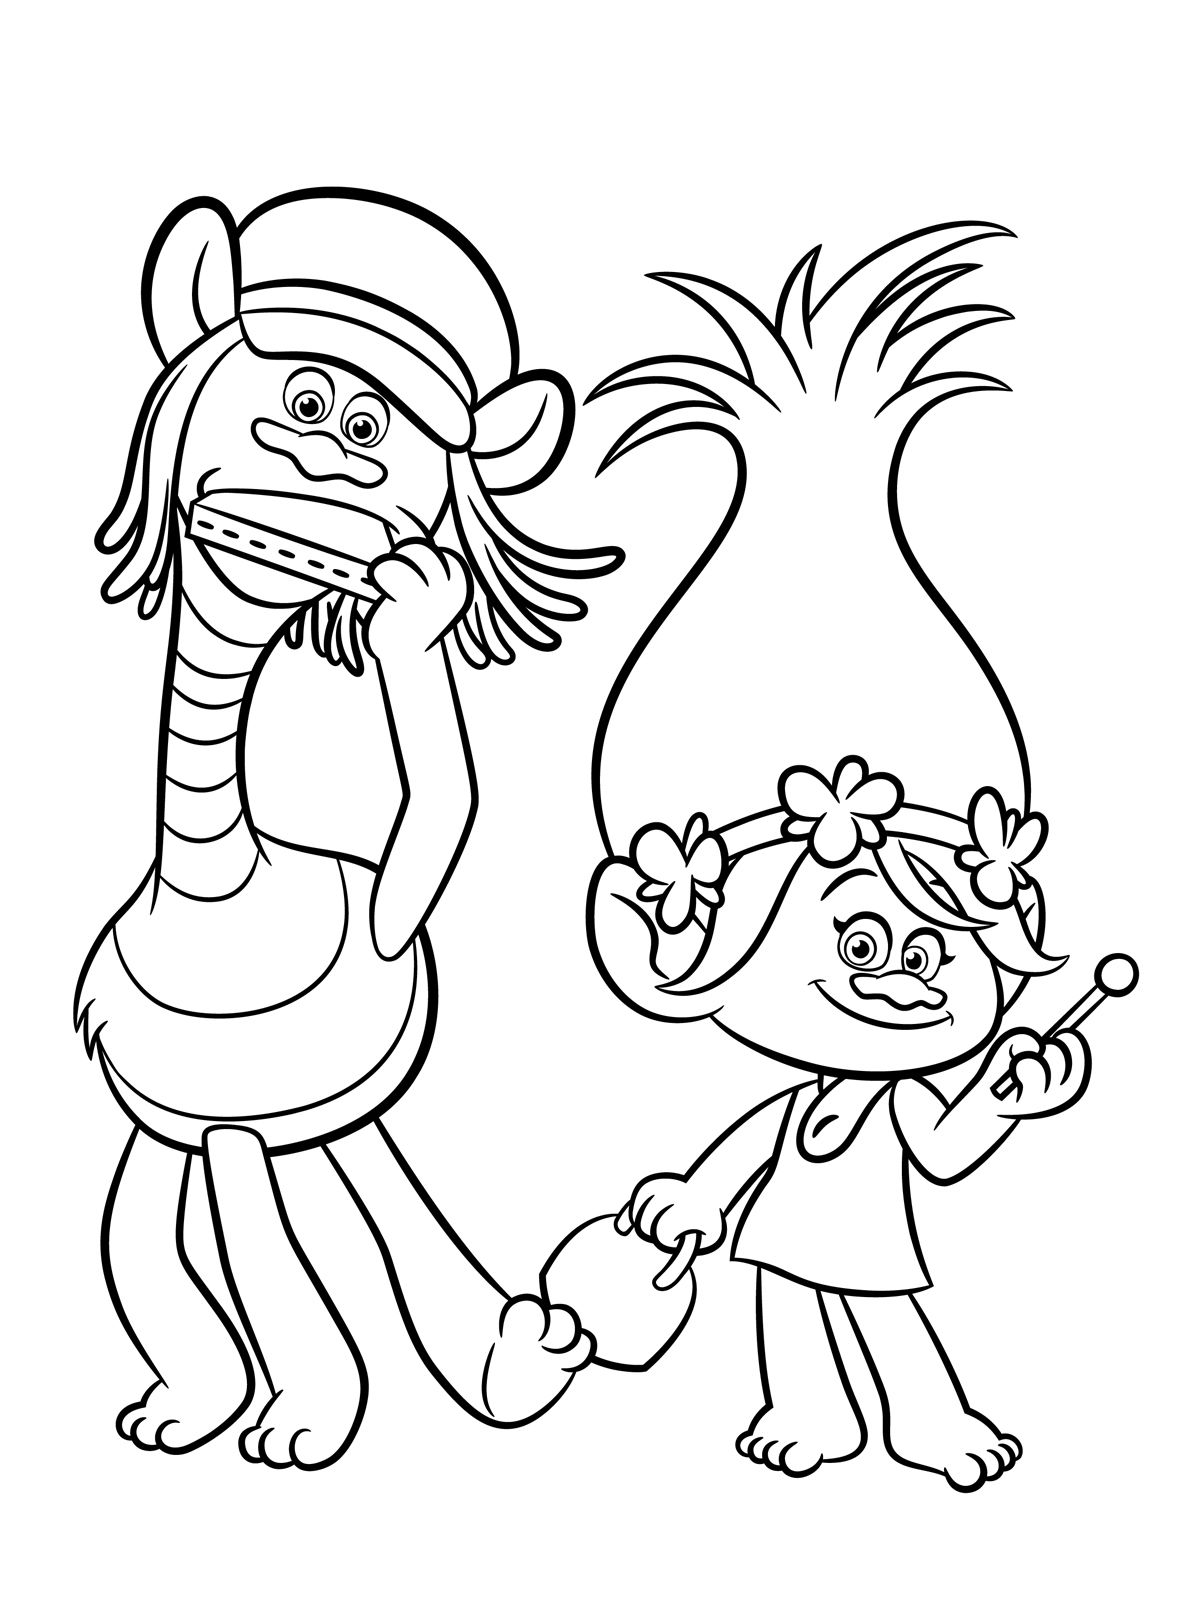 coloring images for kids caillou coloring pages best coloring pages for kids coloring kids images for